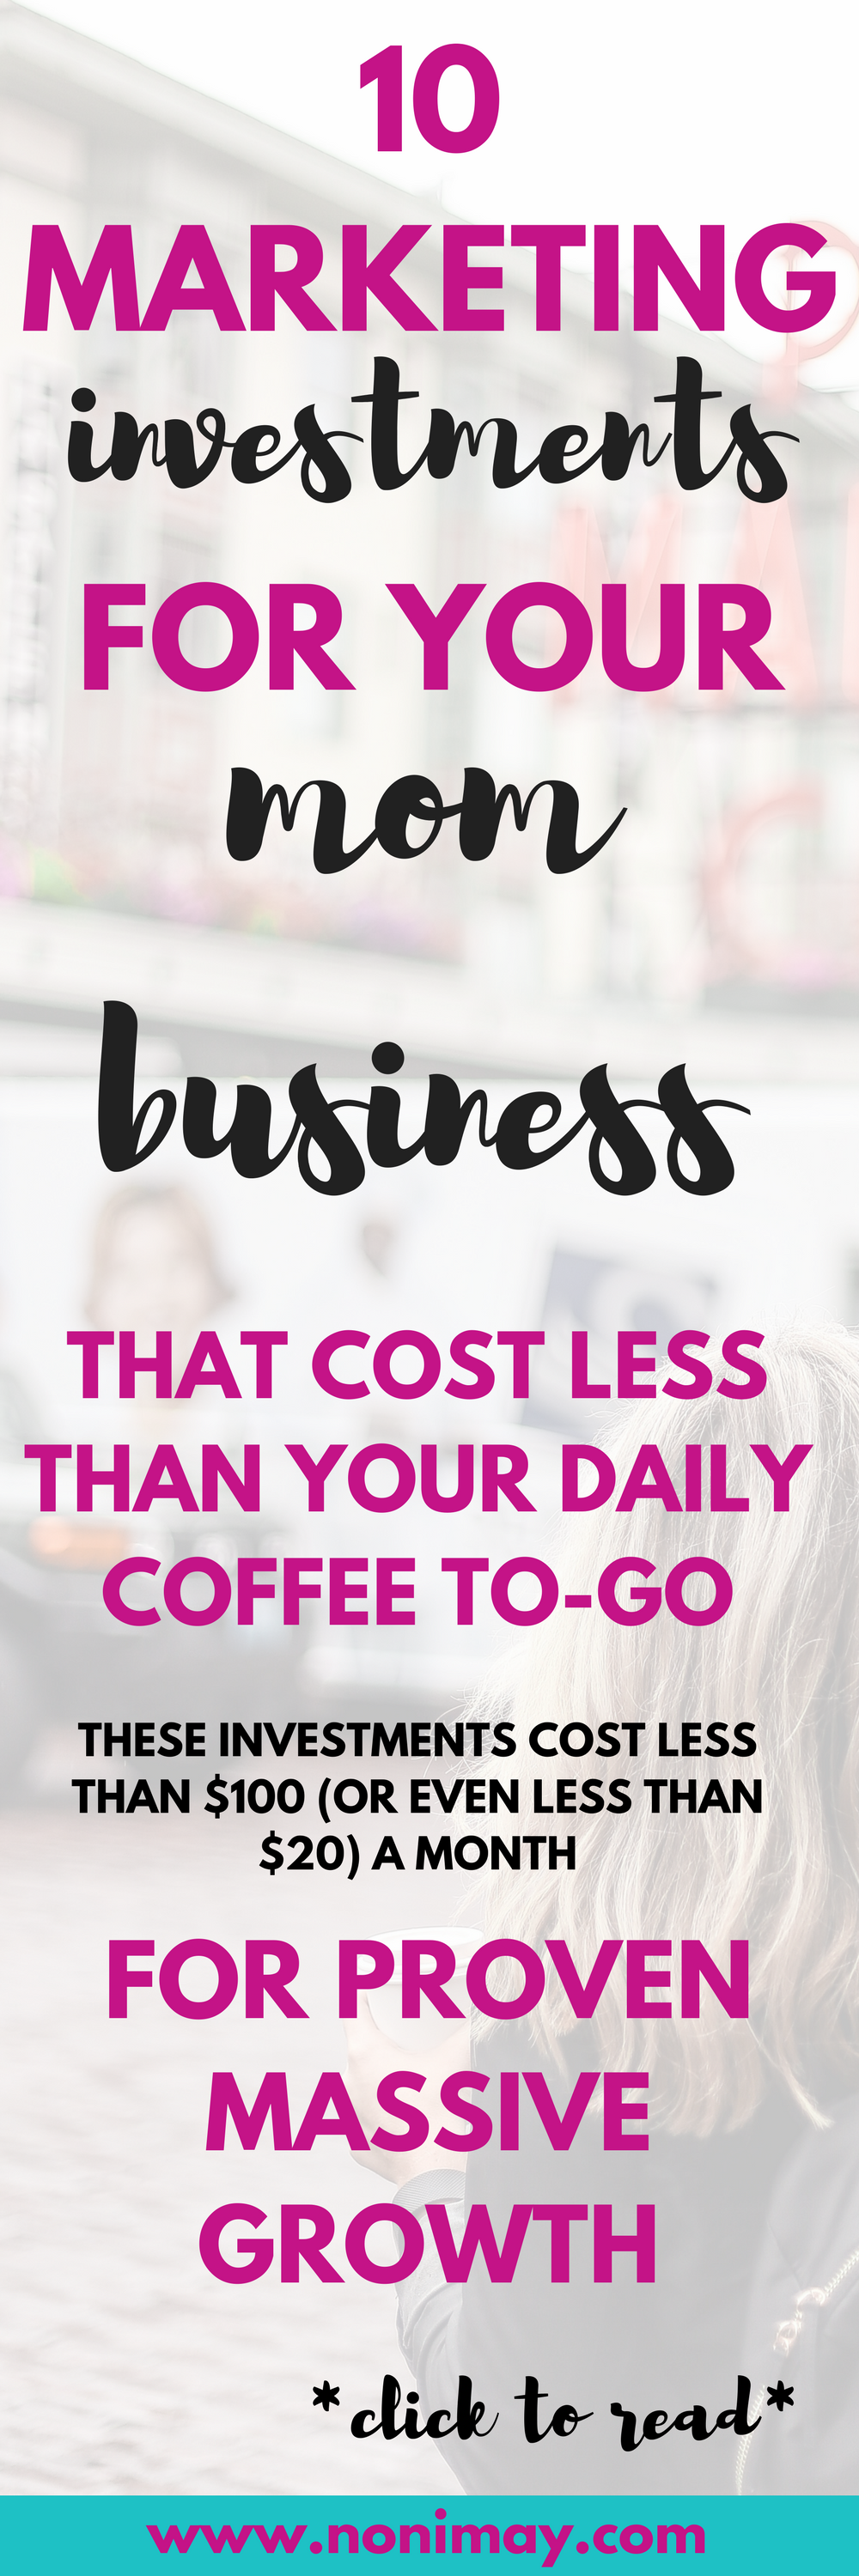 10 marketing investments for your mom business that cost less than your daily coffee to-go